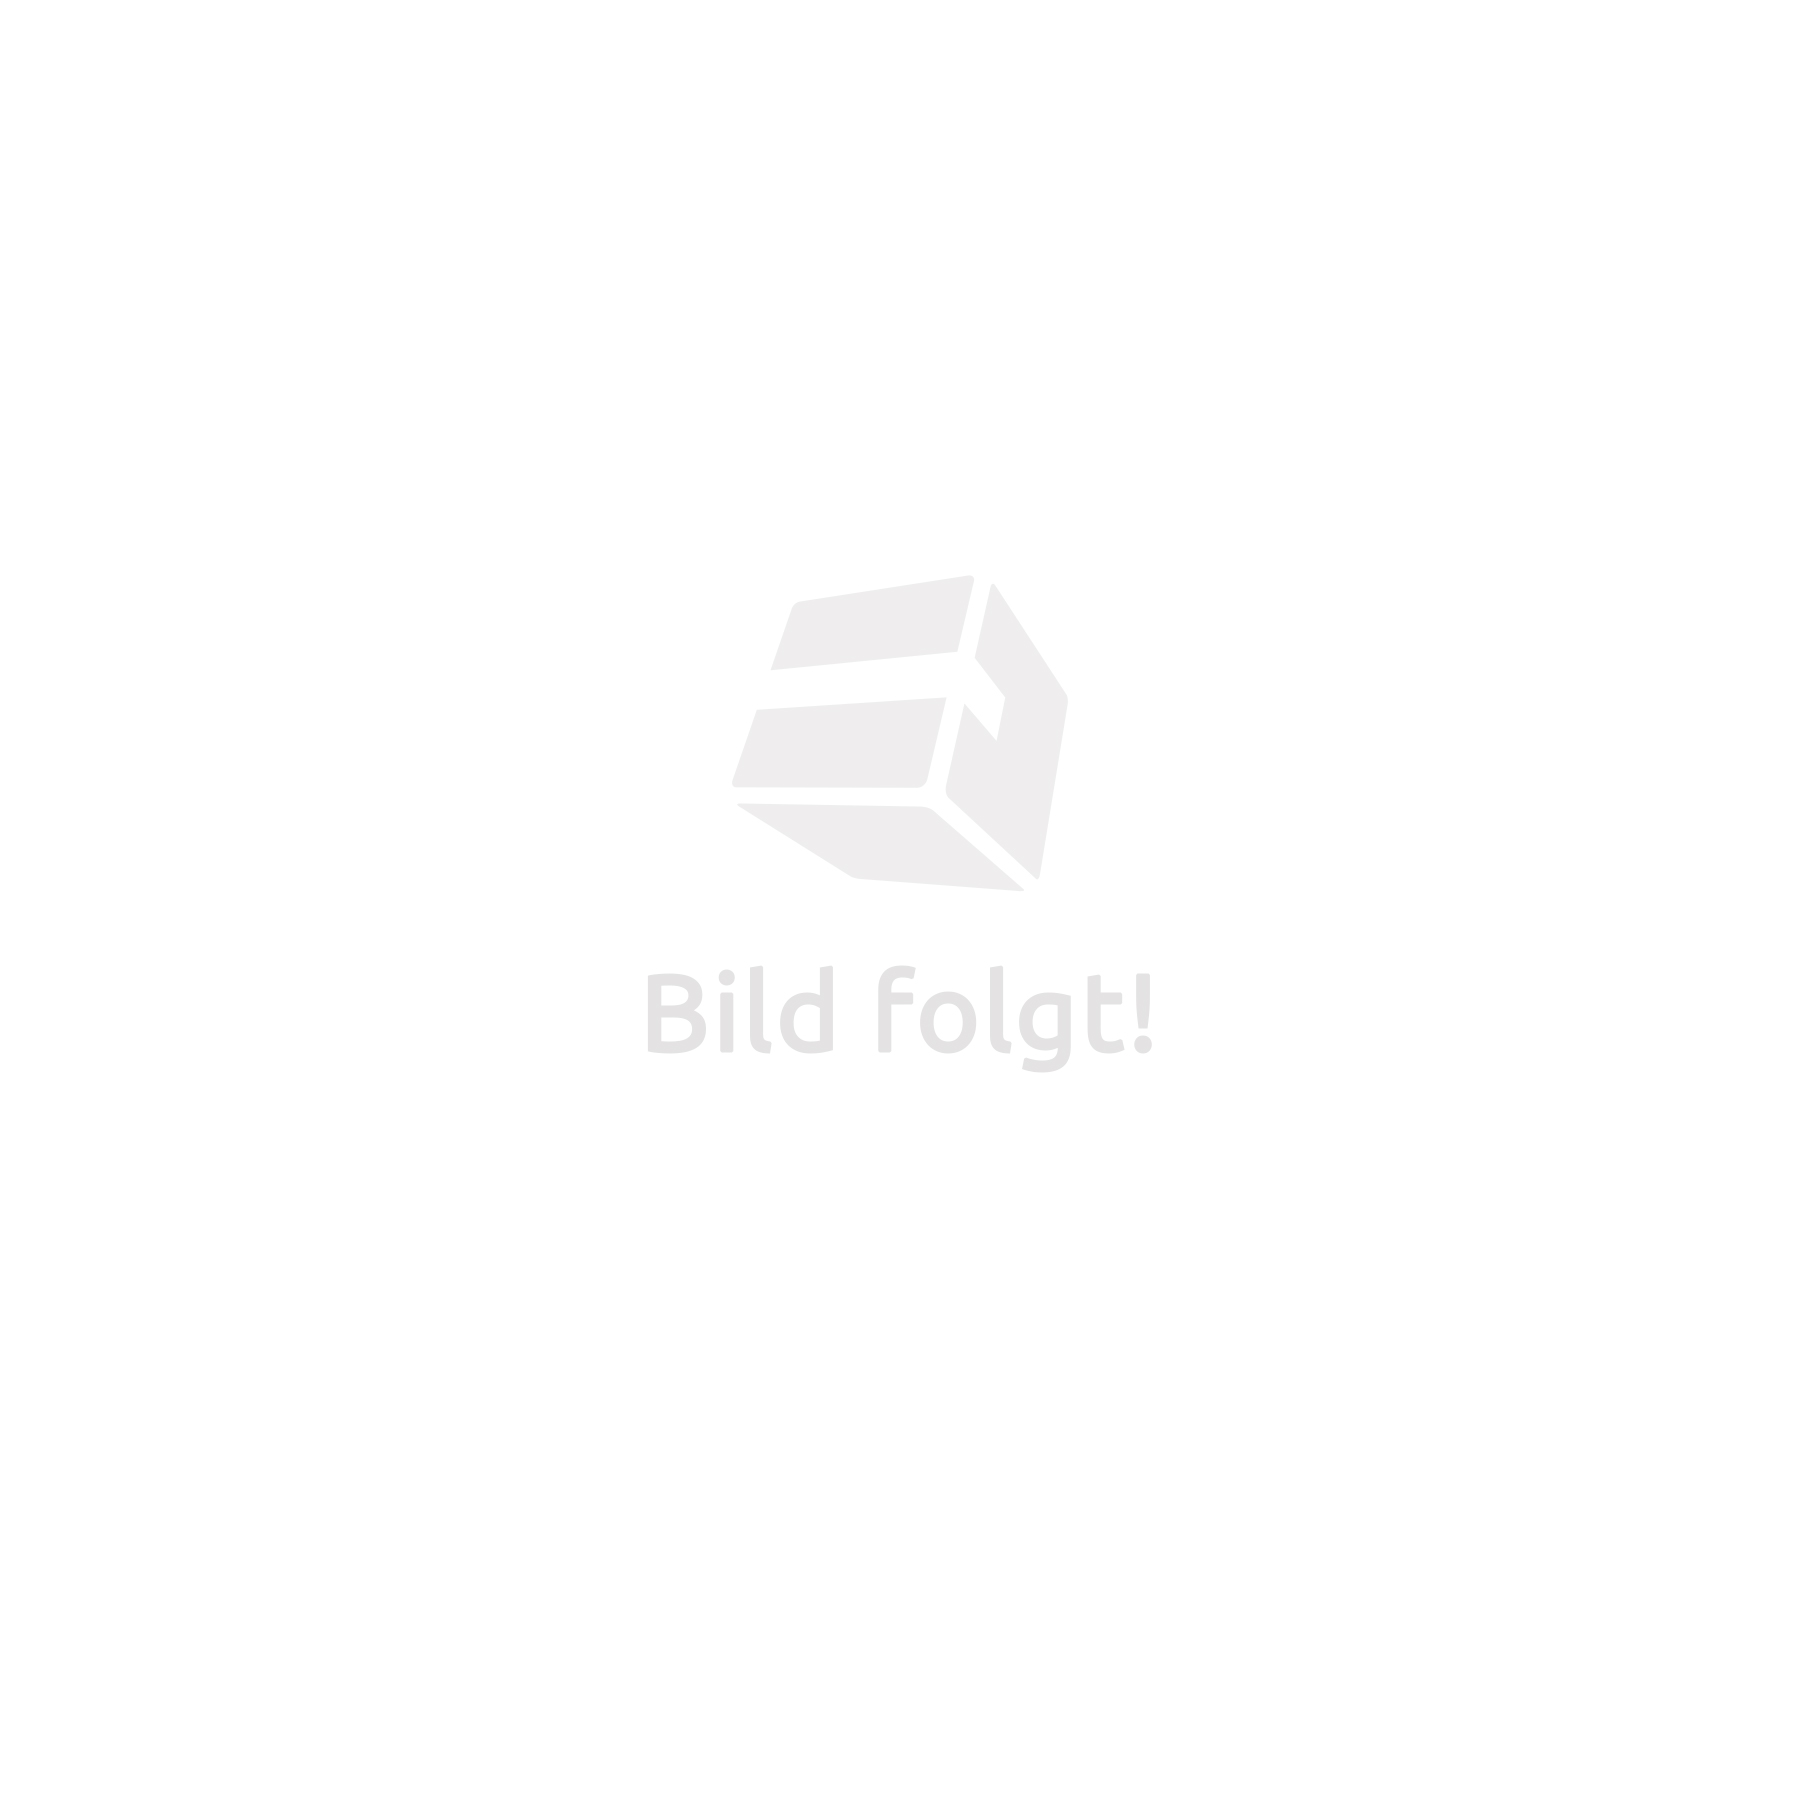 Hundetransportbox double 97 x 90 x 69,5 cm